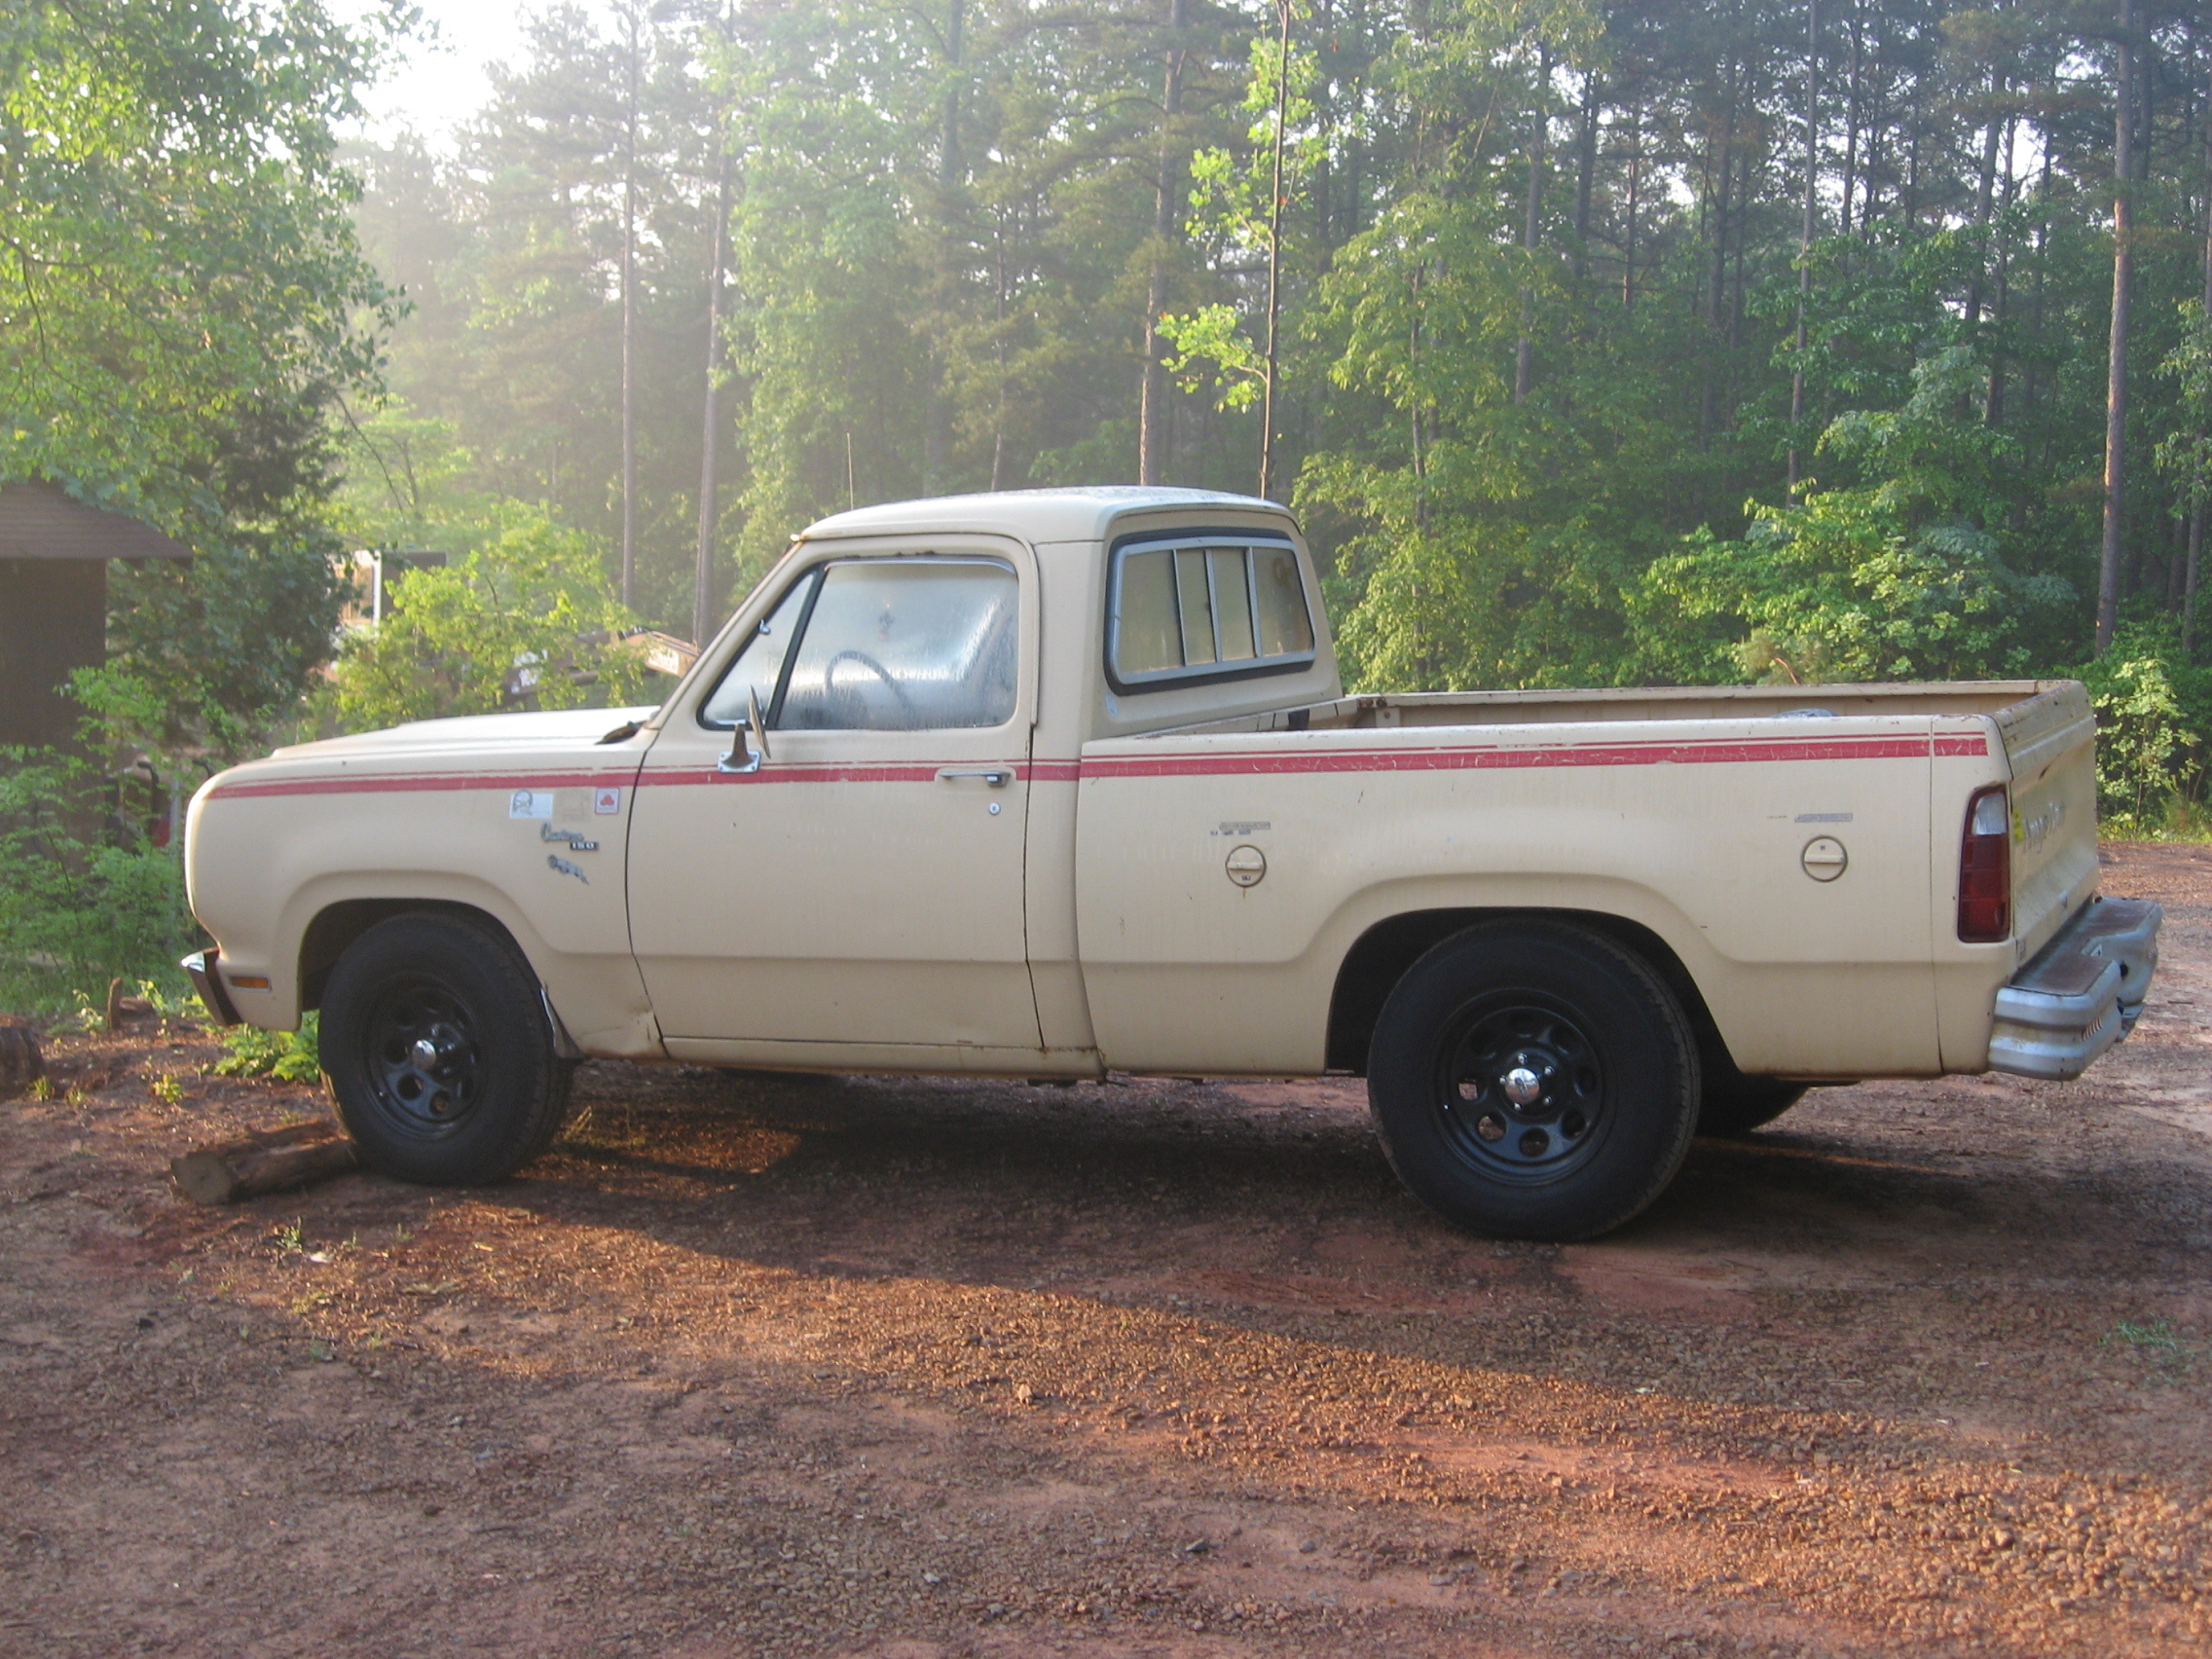 Southern Fixers Profile In Martin Ga 1980 Dodge Pickup Truck Another Fixer Ram 1500 Regular Cab Post 13495512